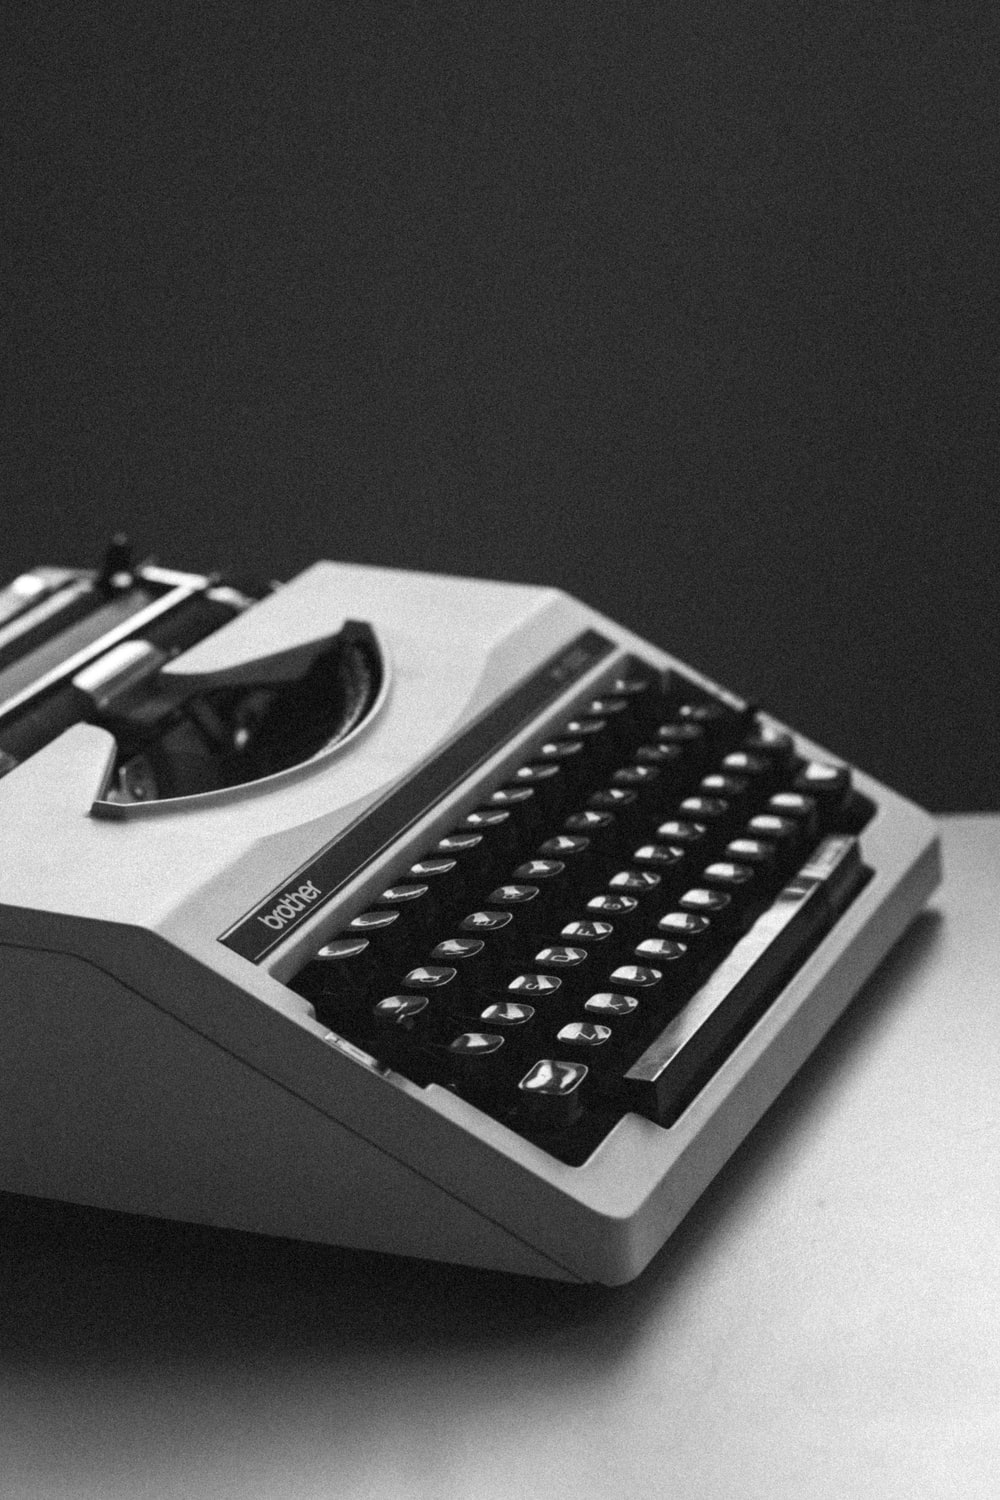 white and black typewriter close-up photography